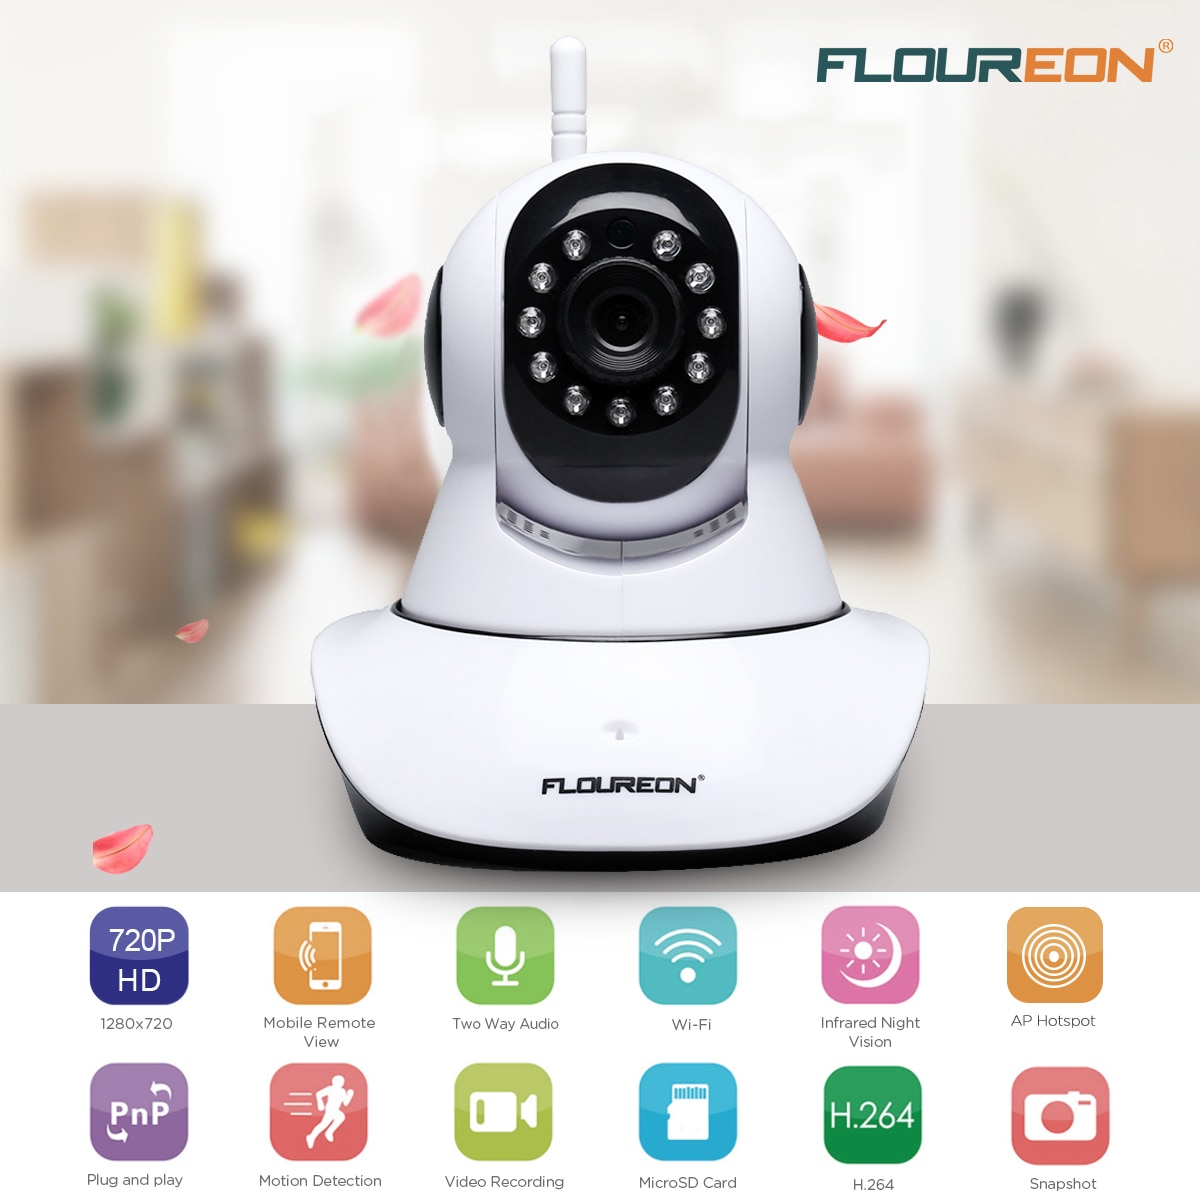 Floureon Indoor Wireless Pan or Tile CCTV WiFi Home Security IP Camera 720P